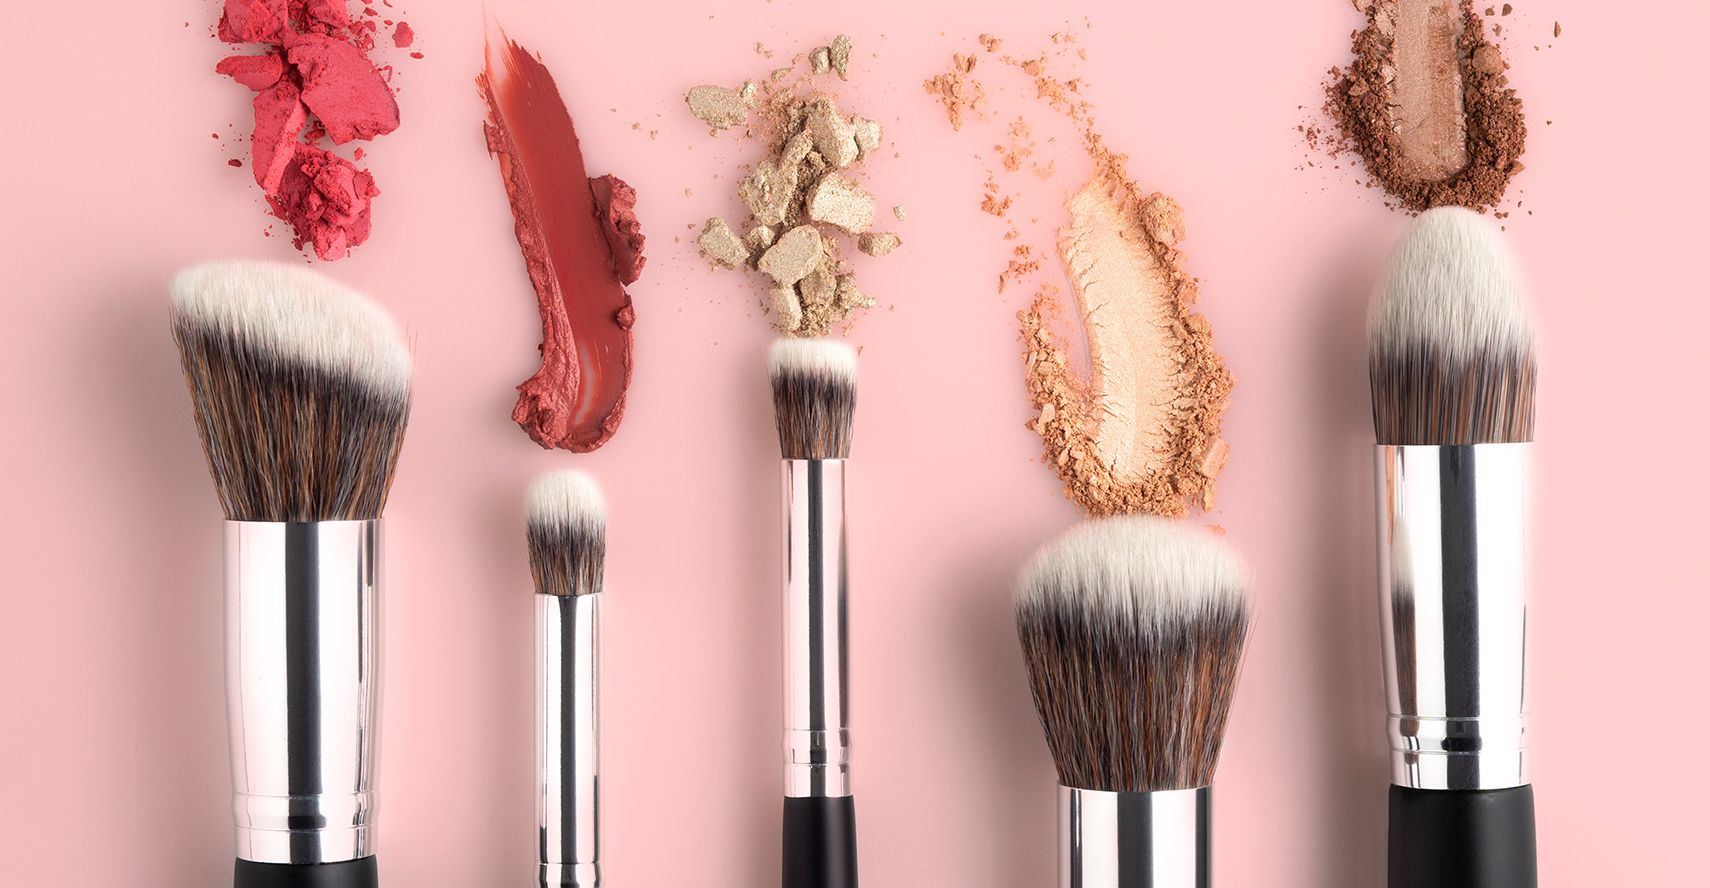 My favorite cruelty-free makeup brands make high-quality cosmetics without compromise!